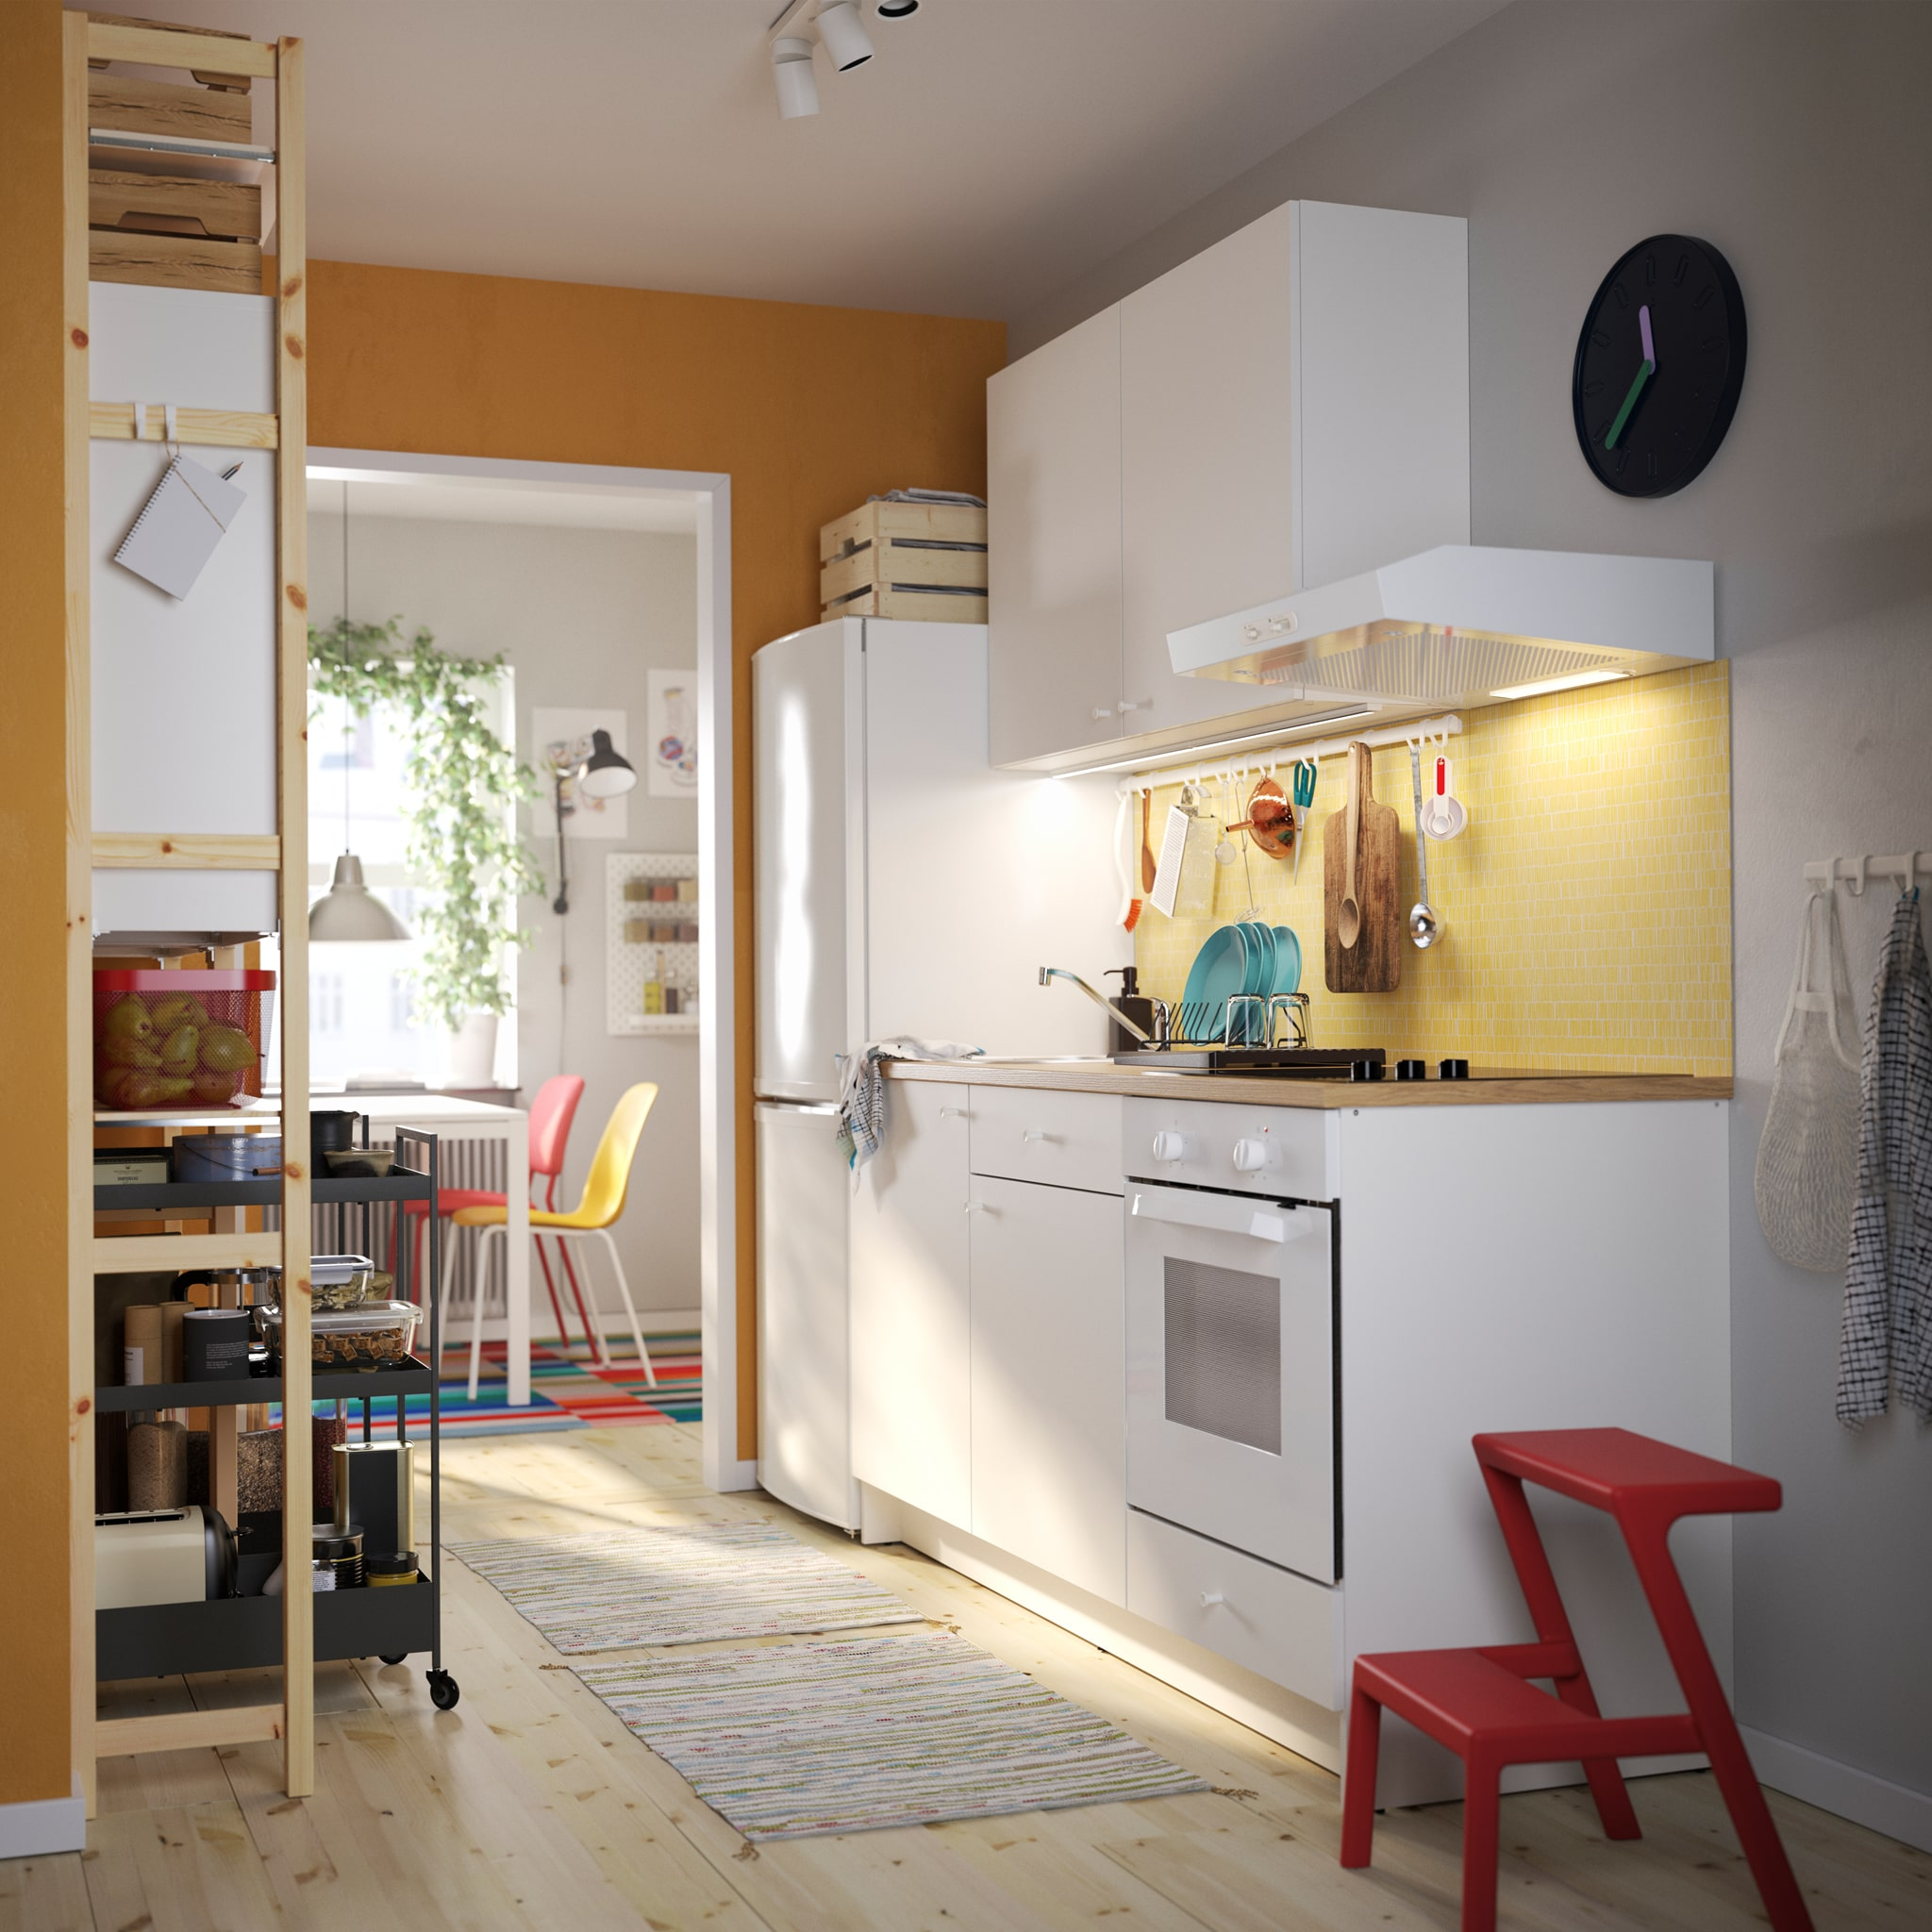 A convenient kitchen for a shared home